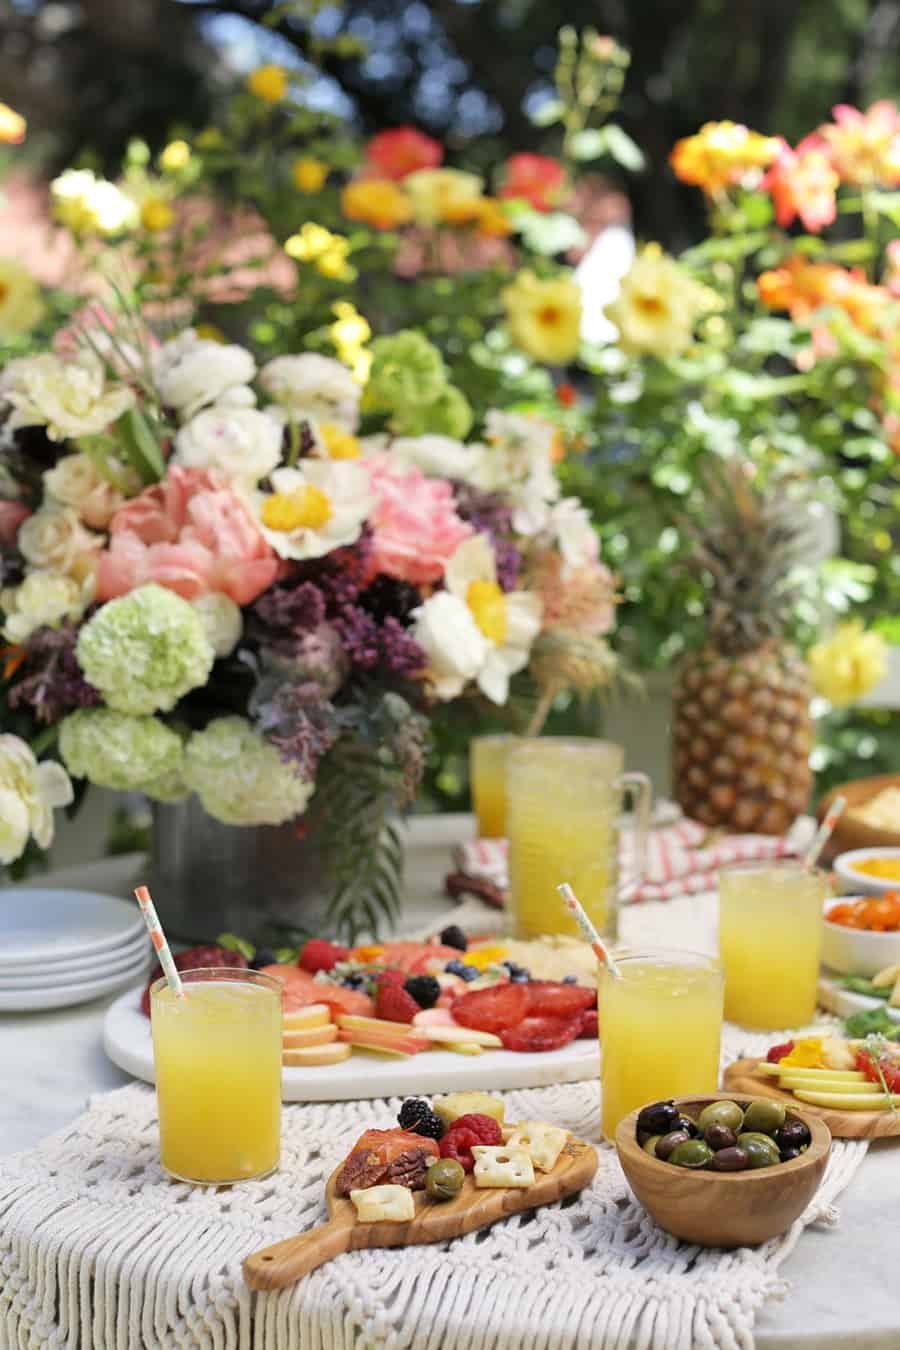 Garden party with flowers, drinks and cheese boards